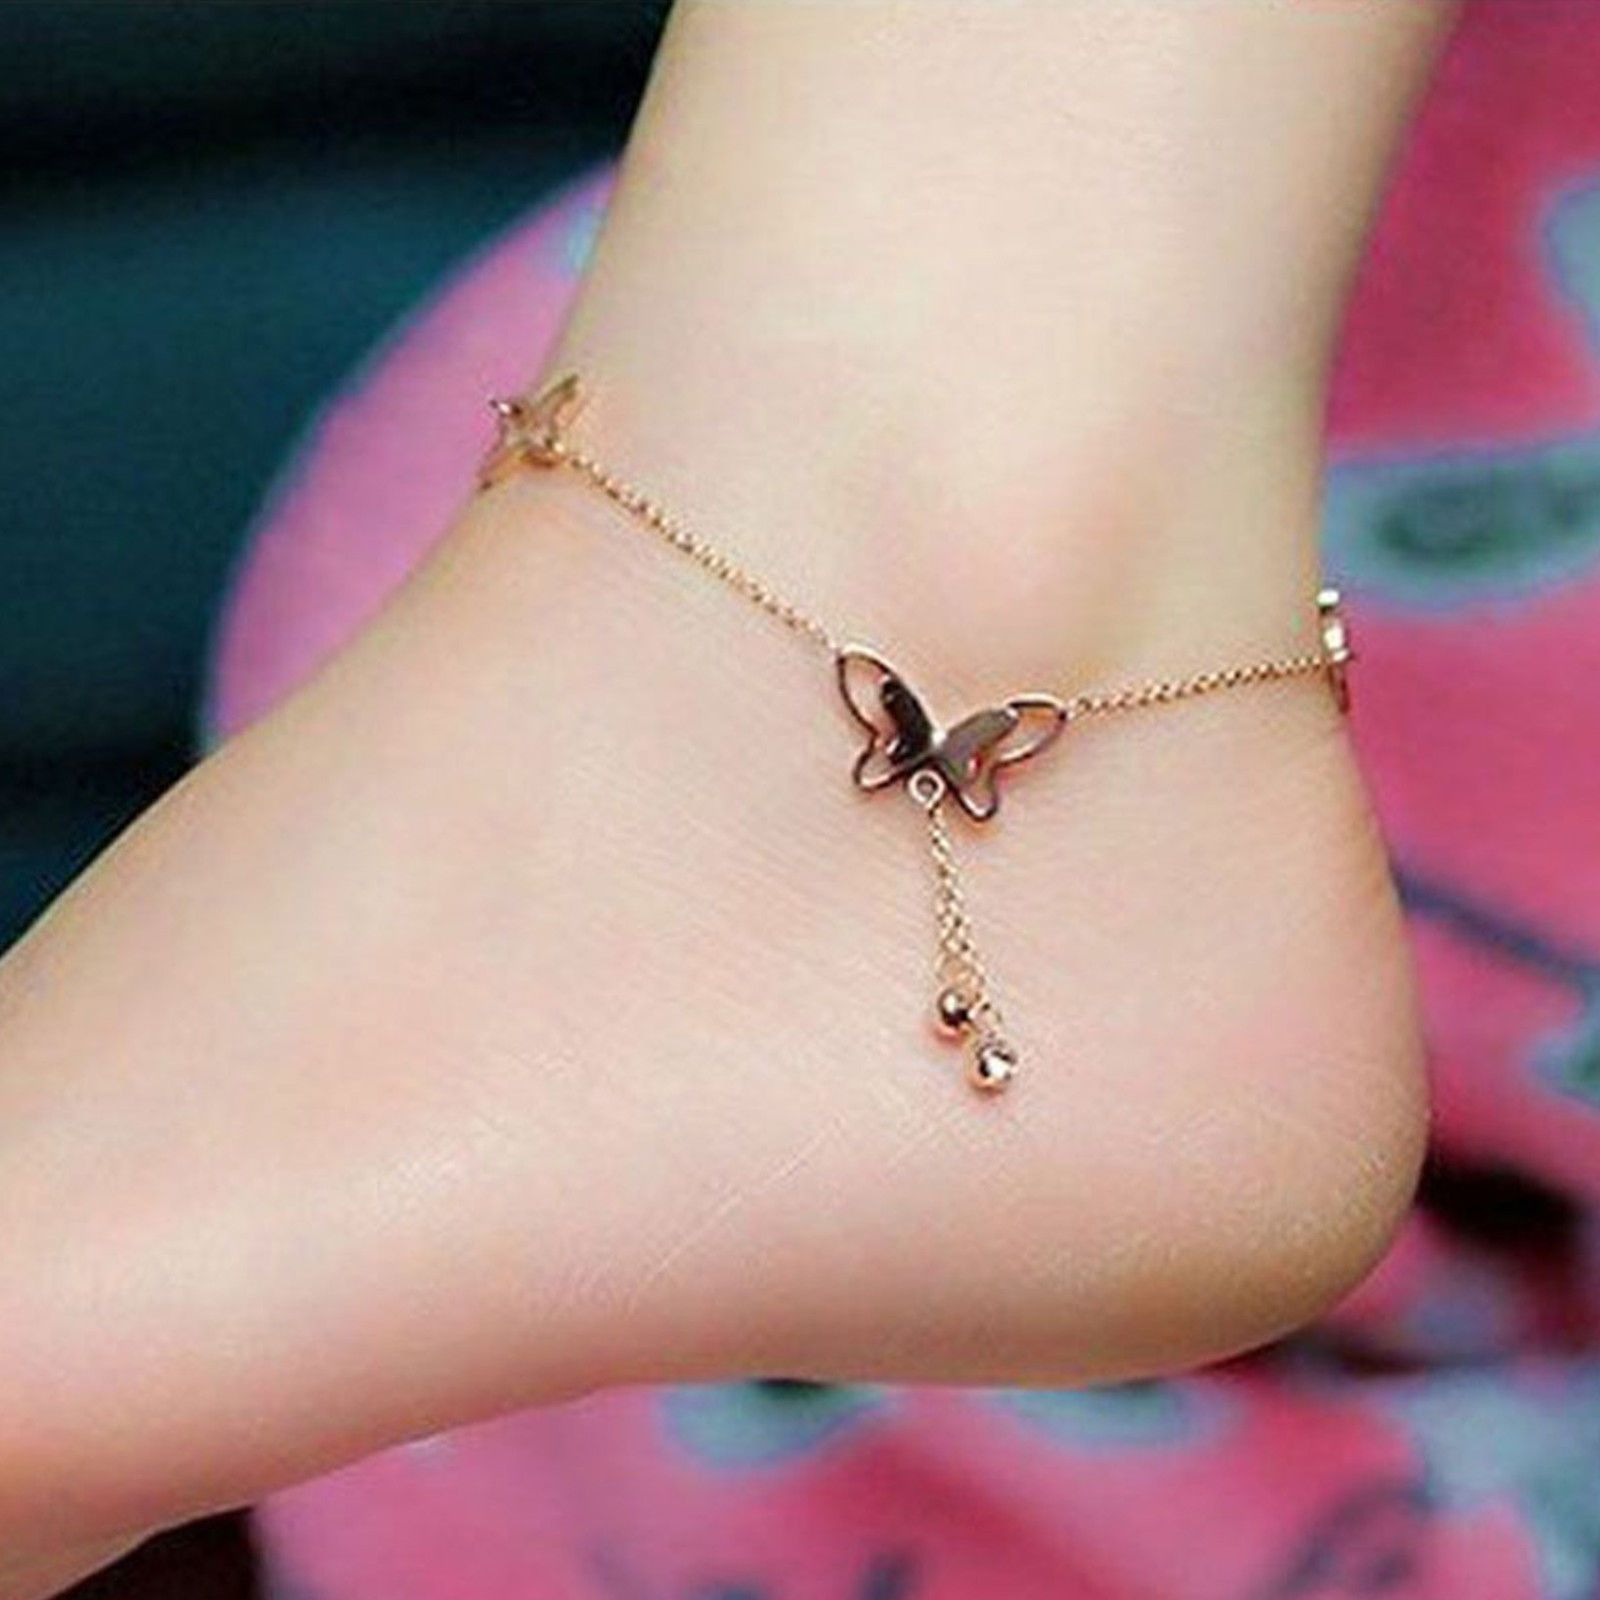 dollar ankle womens bracelets jewelry beach sand beautiful summer snail sea fashion p for handmade anklet women bracelet beaded